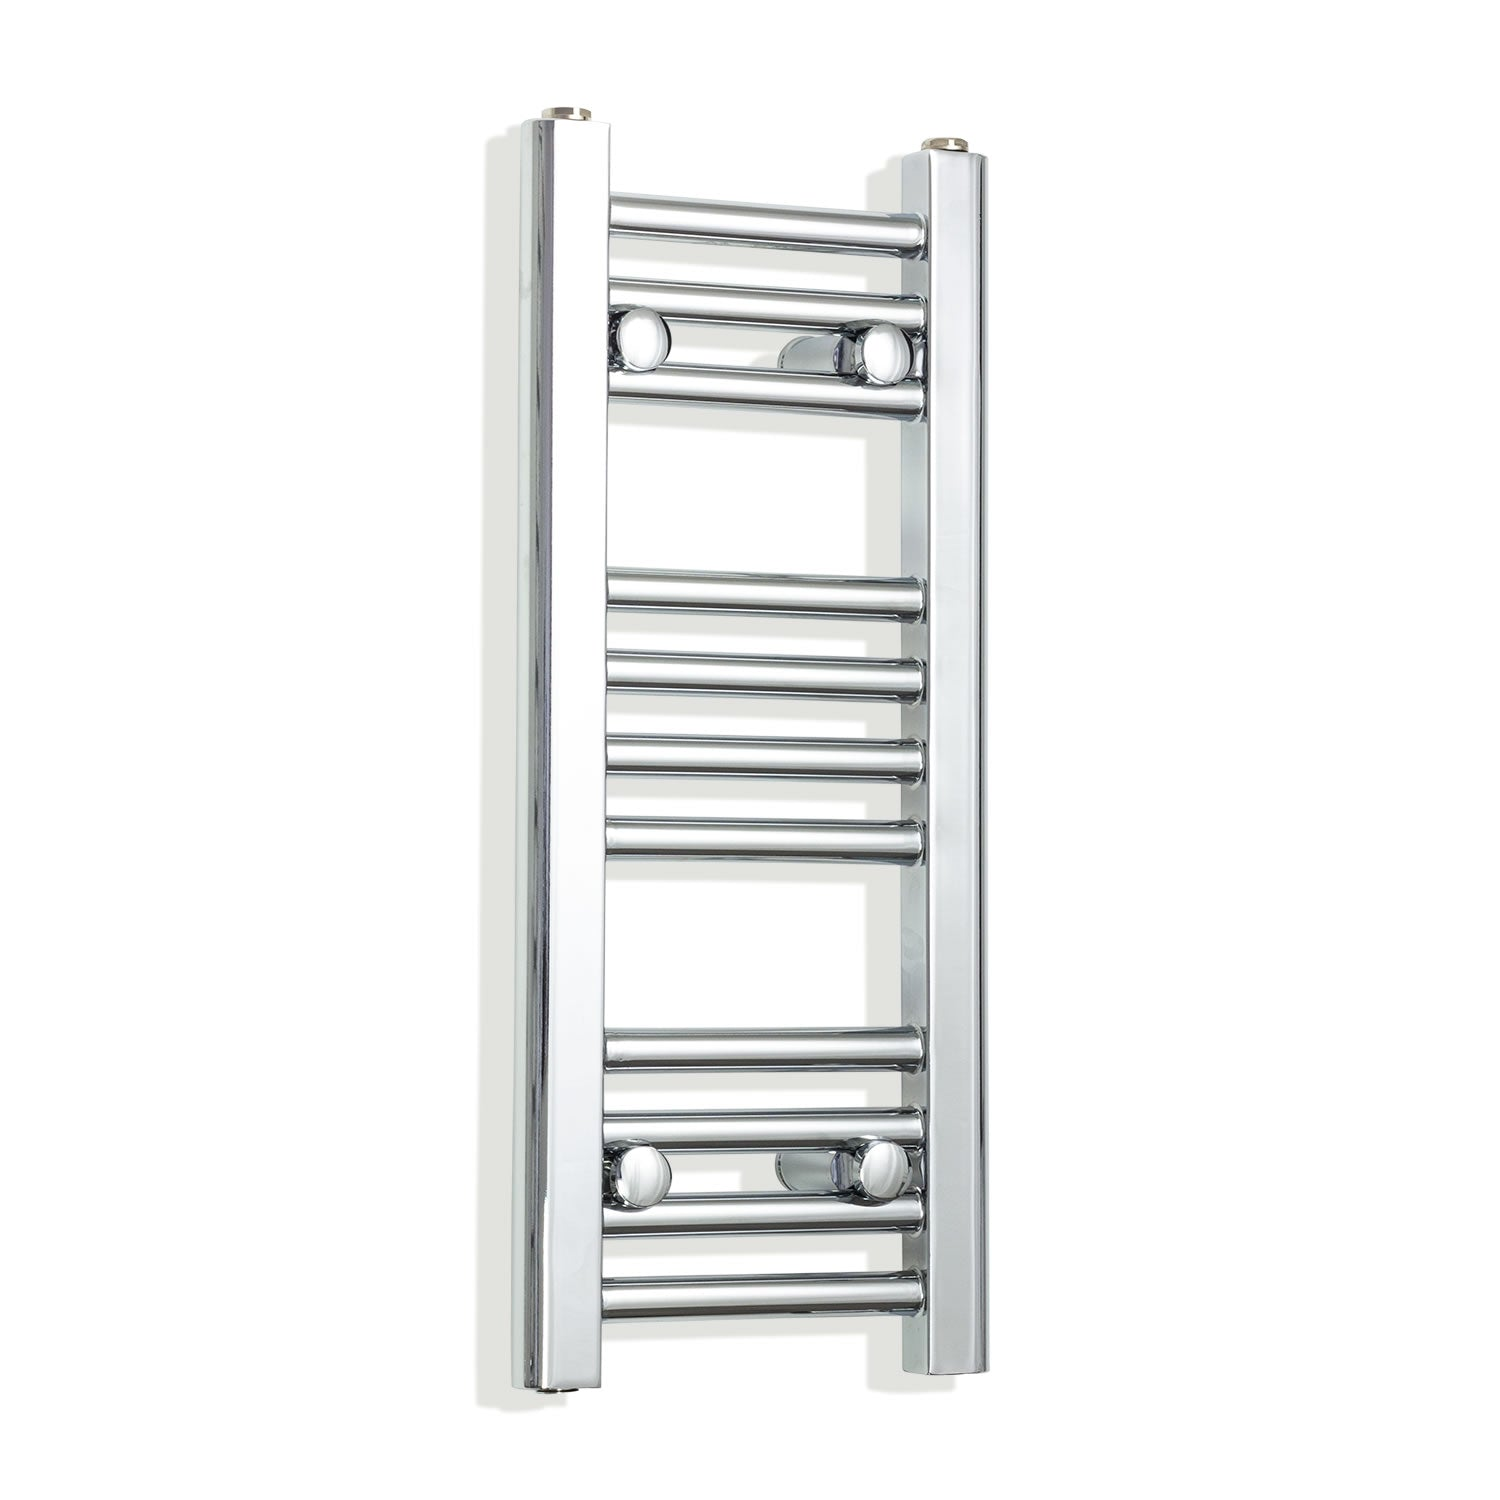 200mm Wide 600mm High Flat Chrome Heated Towel Rail Radiator,Towel Rail Only